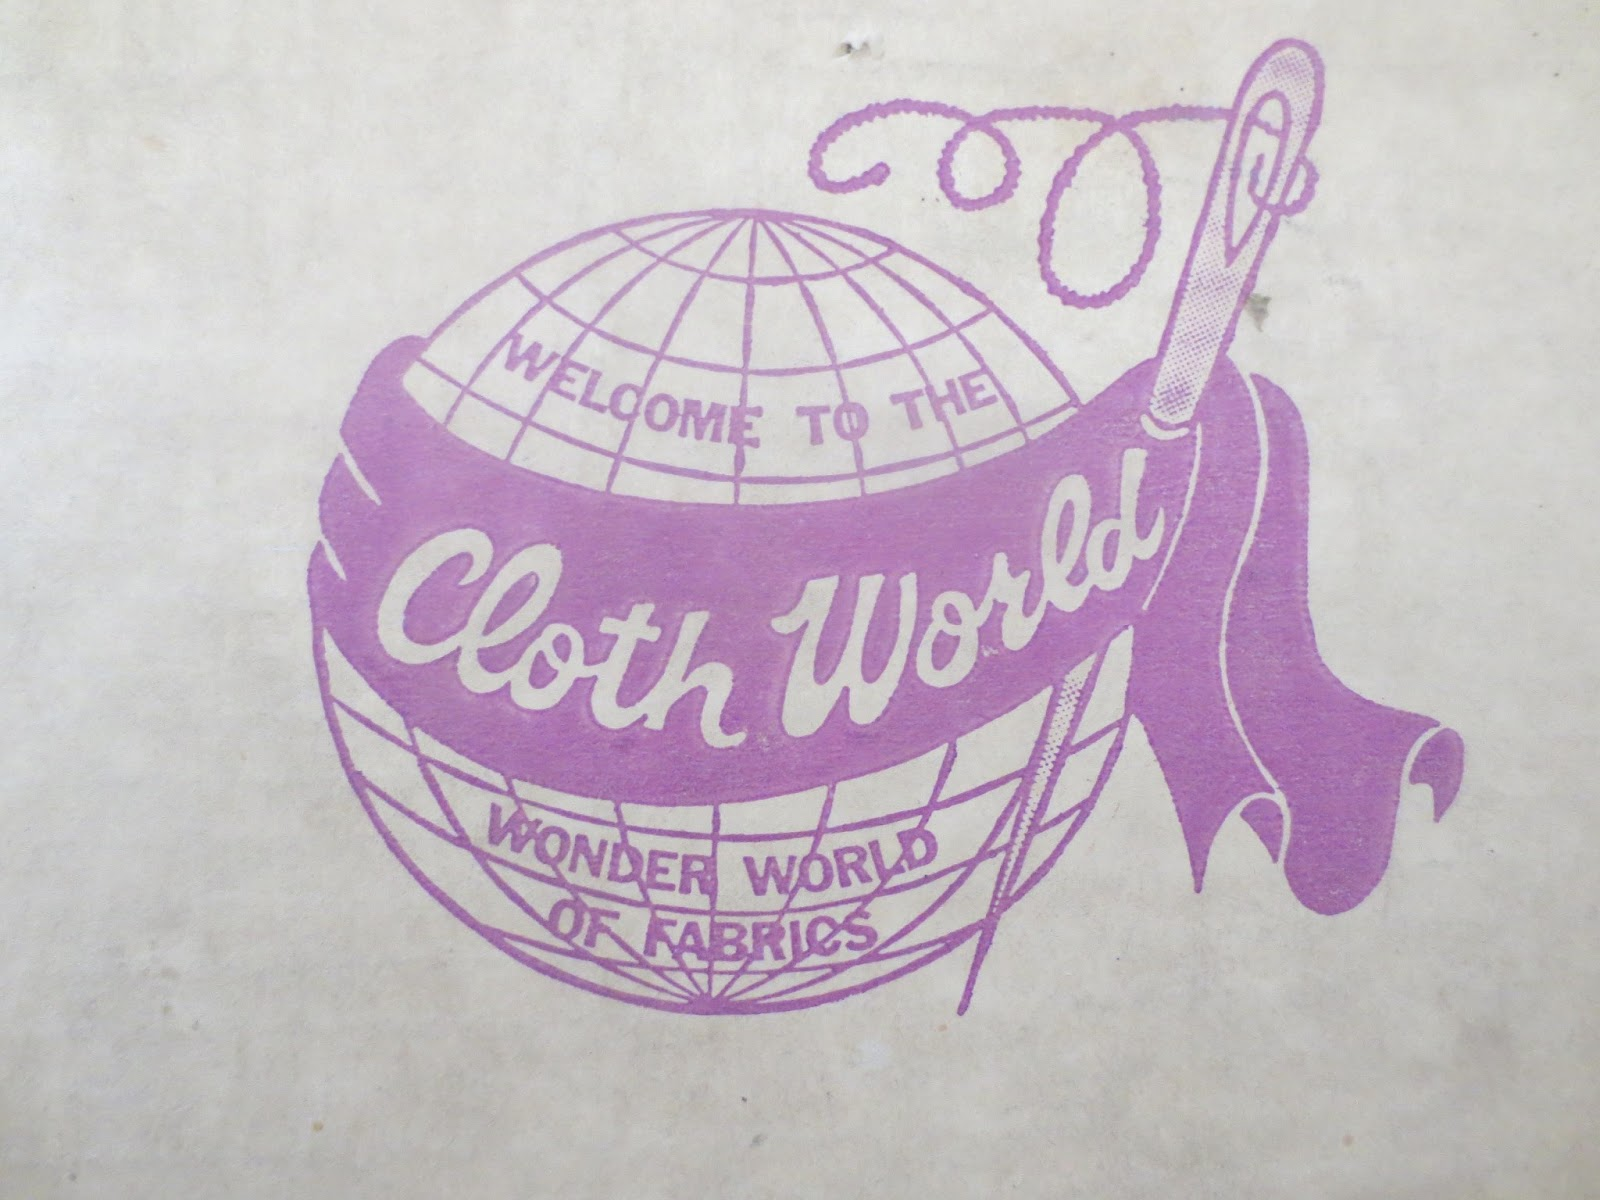 Cloth World Fabric Store via Brentwoodlane